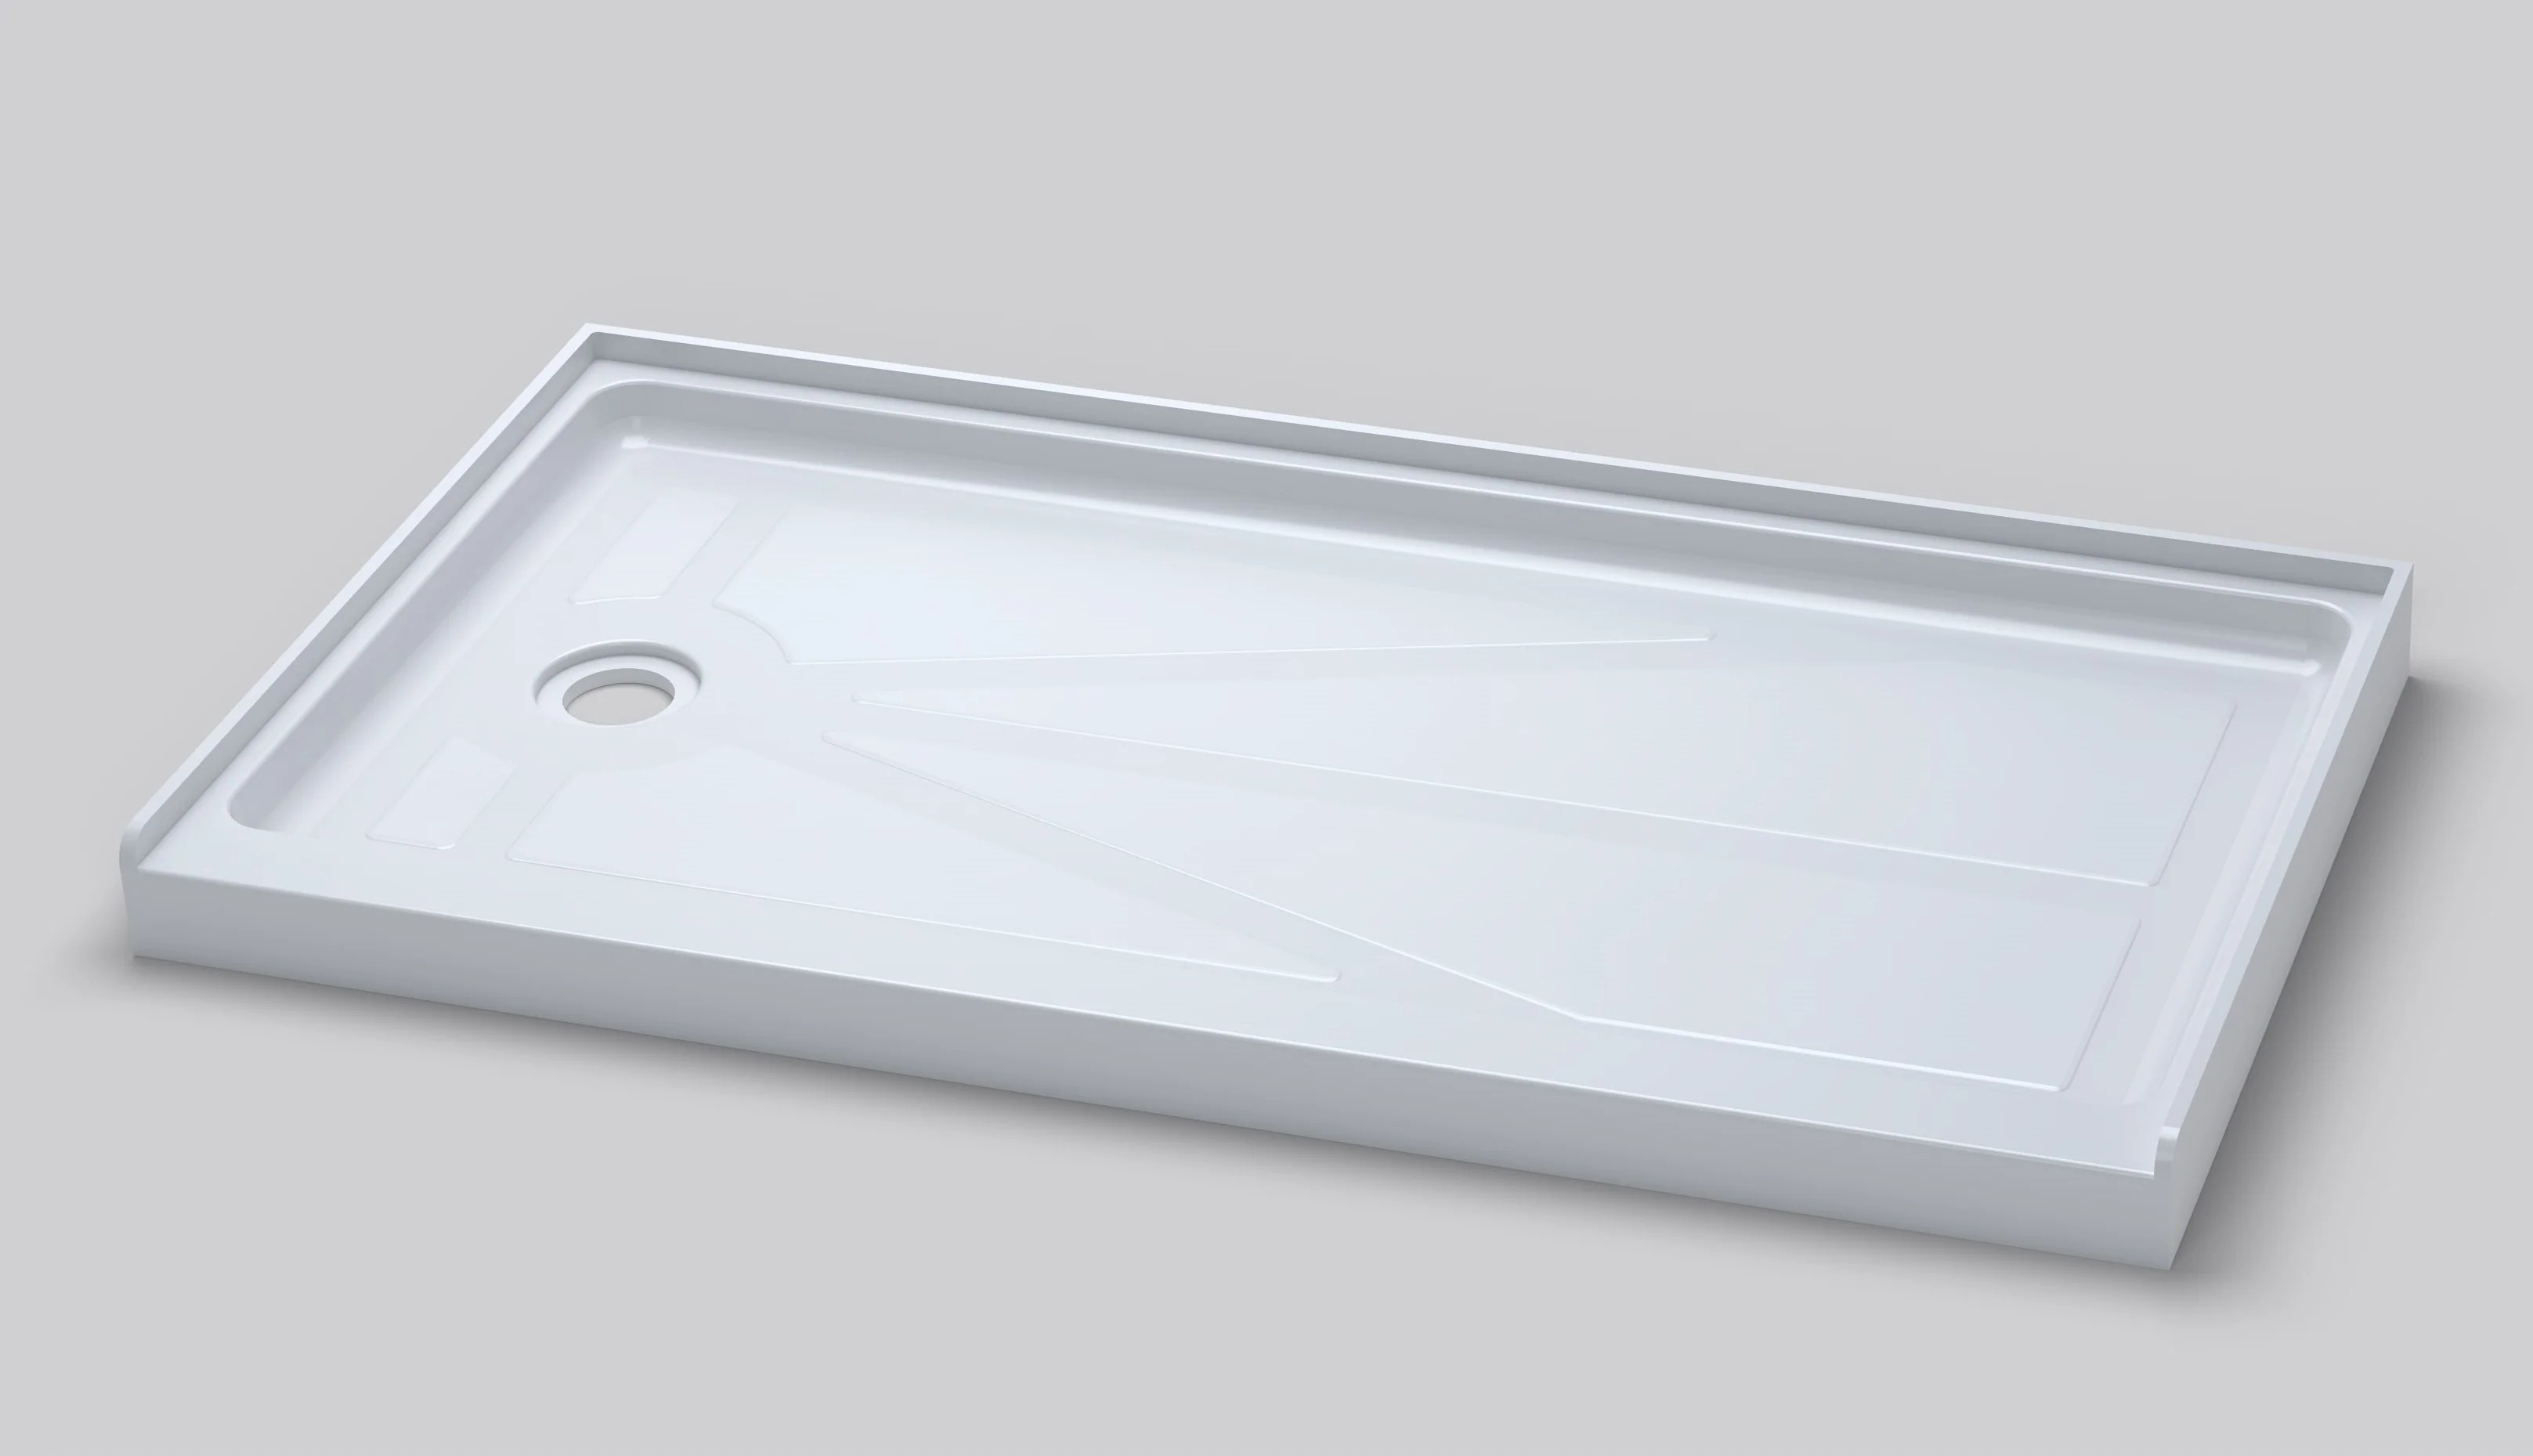 60 By 32 Shower Base 60 Quot X 32 Quot Low Profile Acrylic Shower Base Broadway Vanities